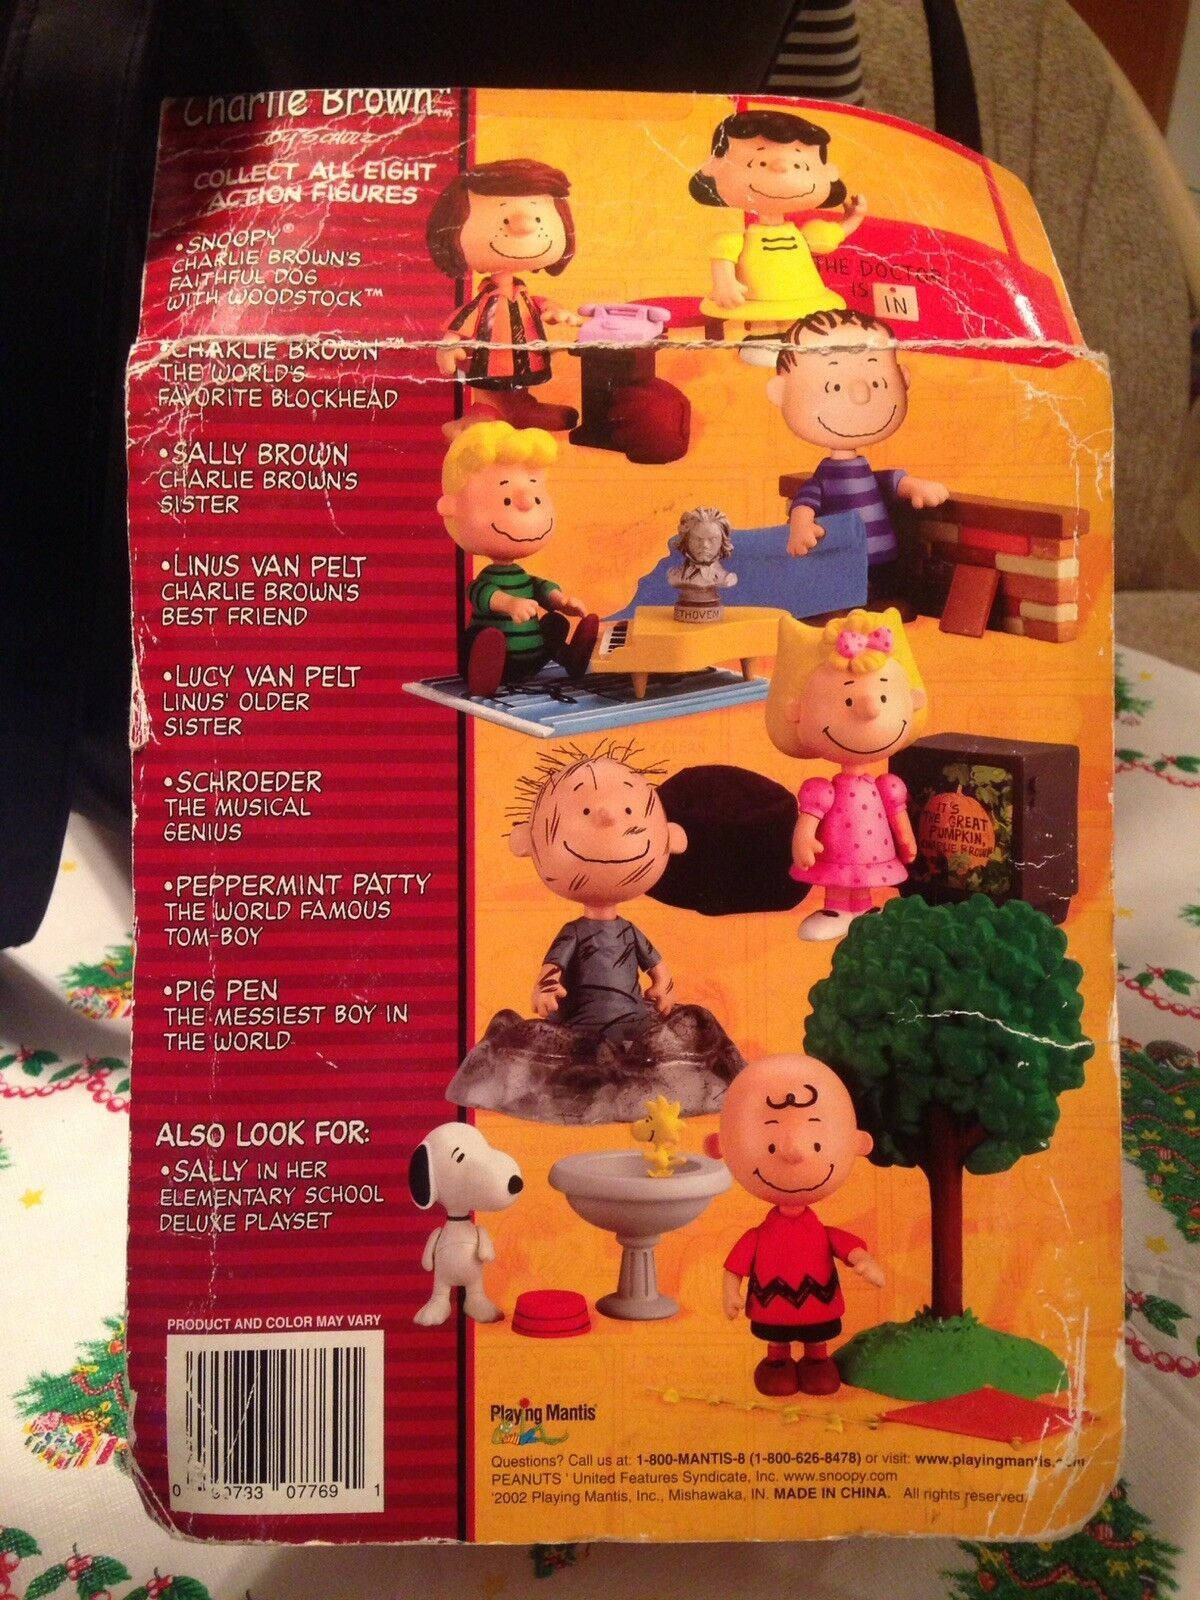 2002 Memory Lane Peanuts Great Pumpkin Charlie Brown Schroeder Playing Mantis